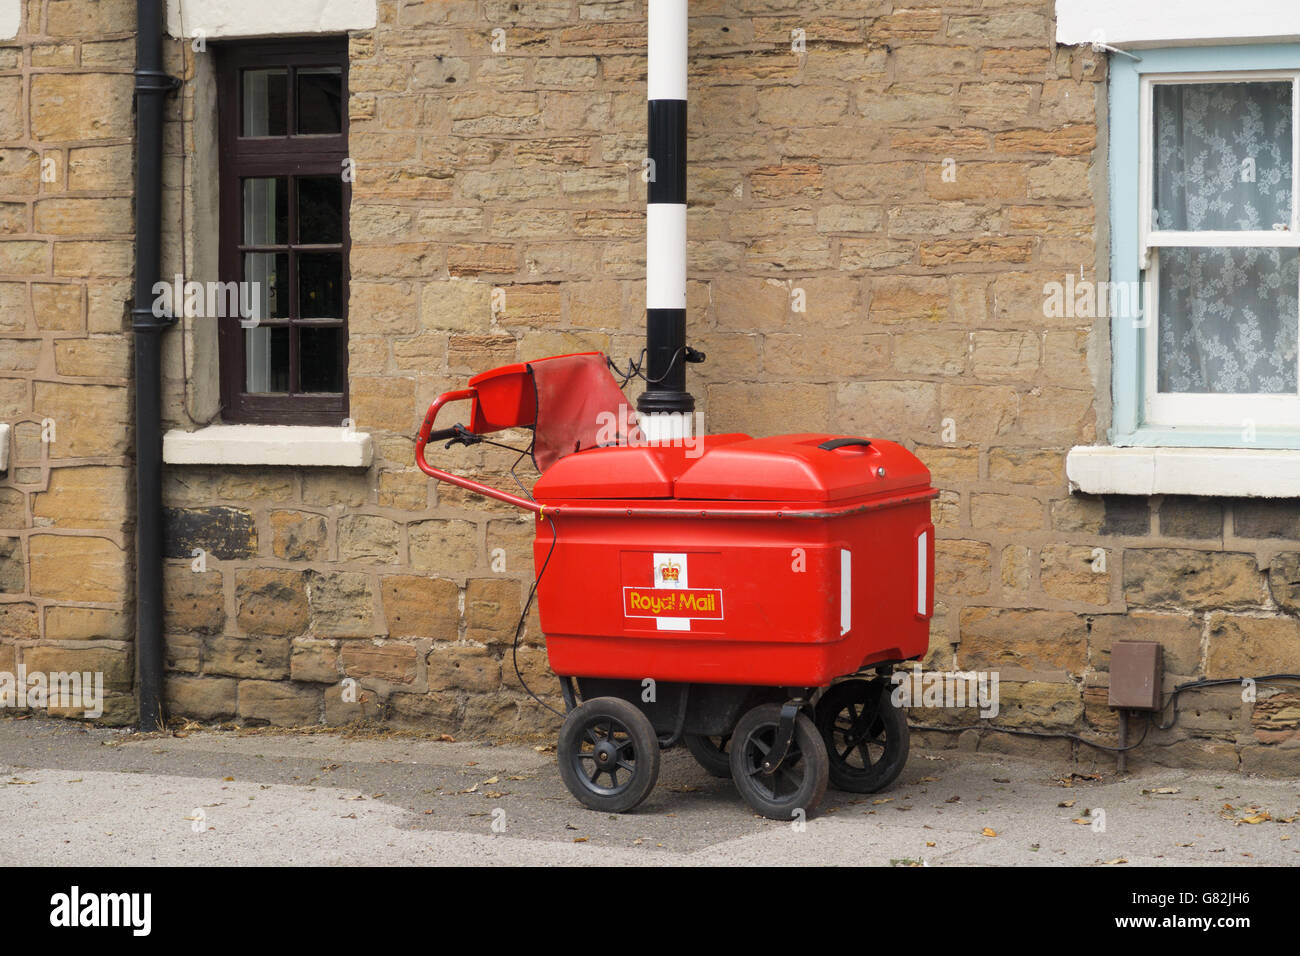 A Royal Mail high capacity trolley chained to a post. - Stock Image